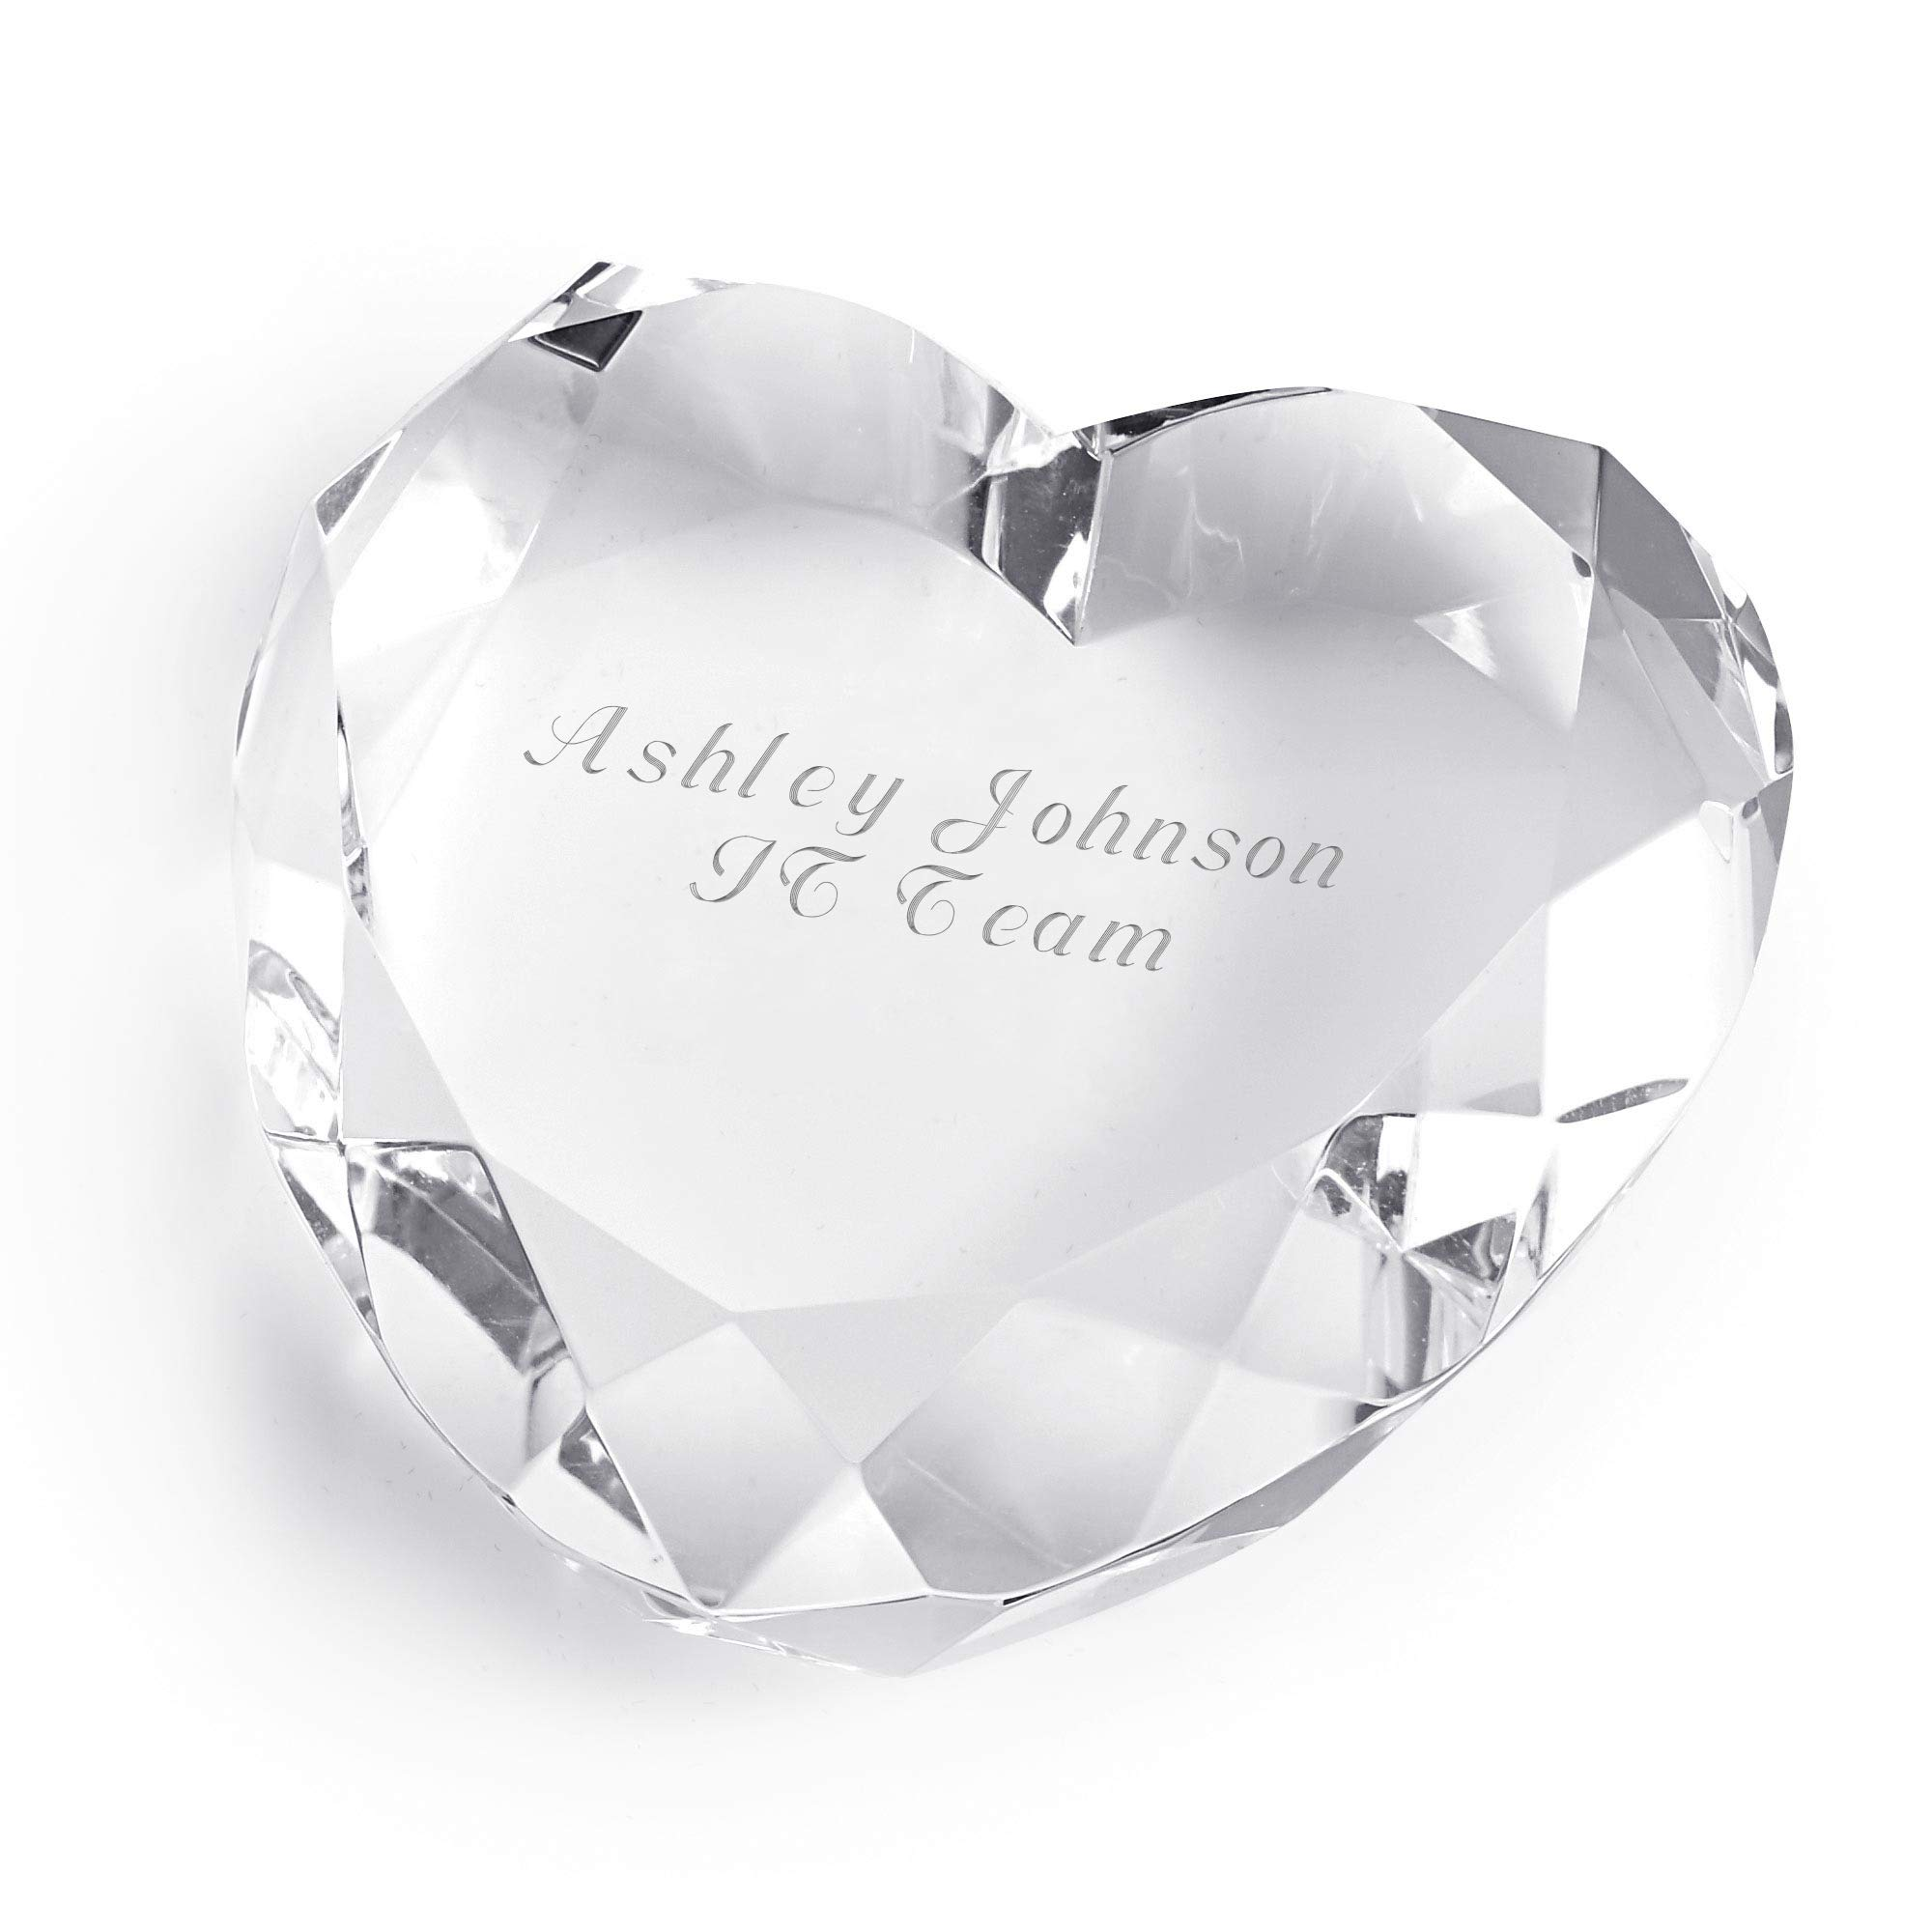 Things Remembered Personalized Clear Crystal Heart Shaped Paperweight with Engraving Included by Things Remembered